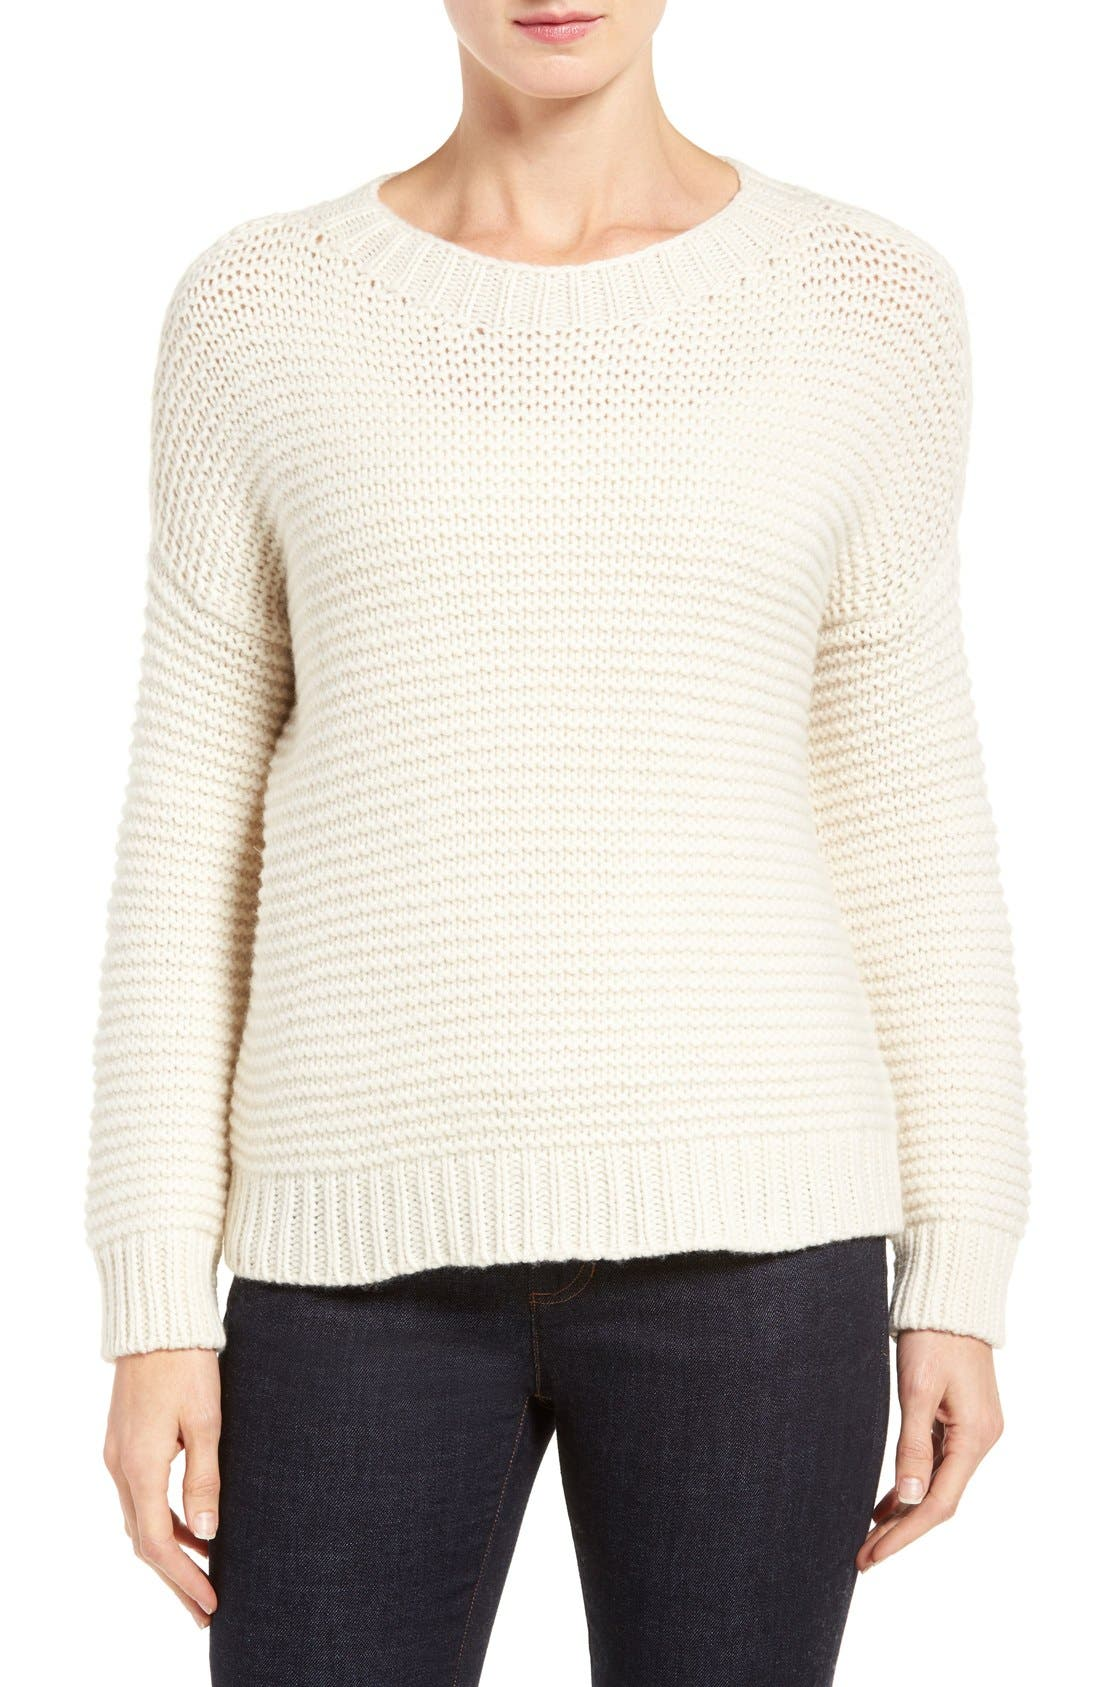 Lofty Recycled Cashmere Blend Sweater,                             Main thumbnail 1, color,                             103